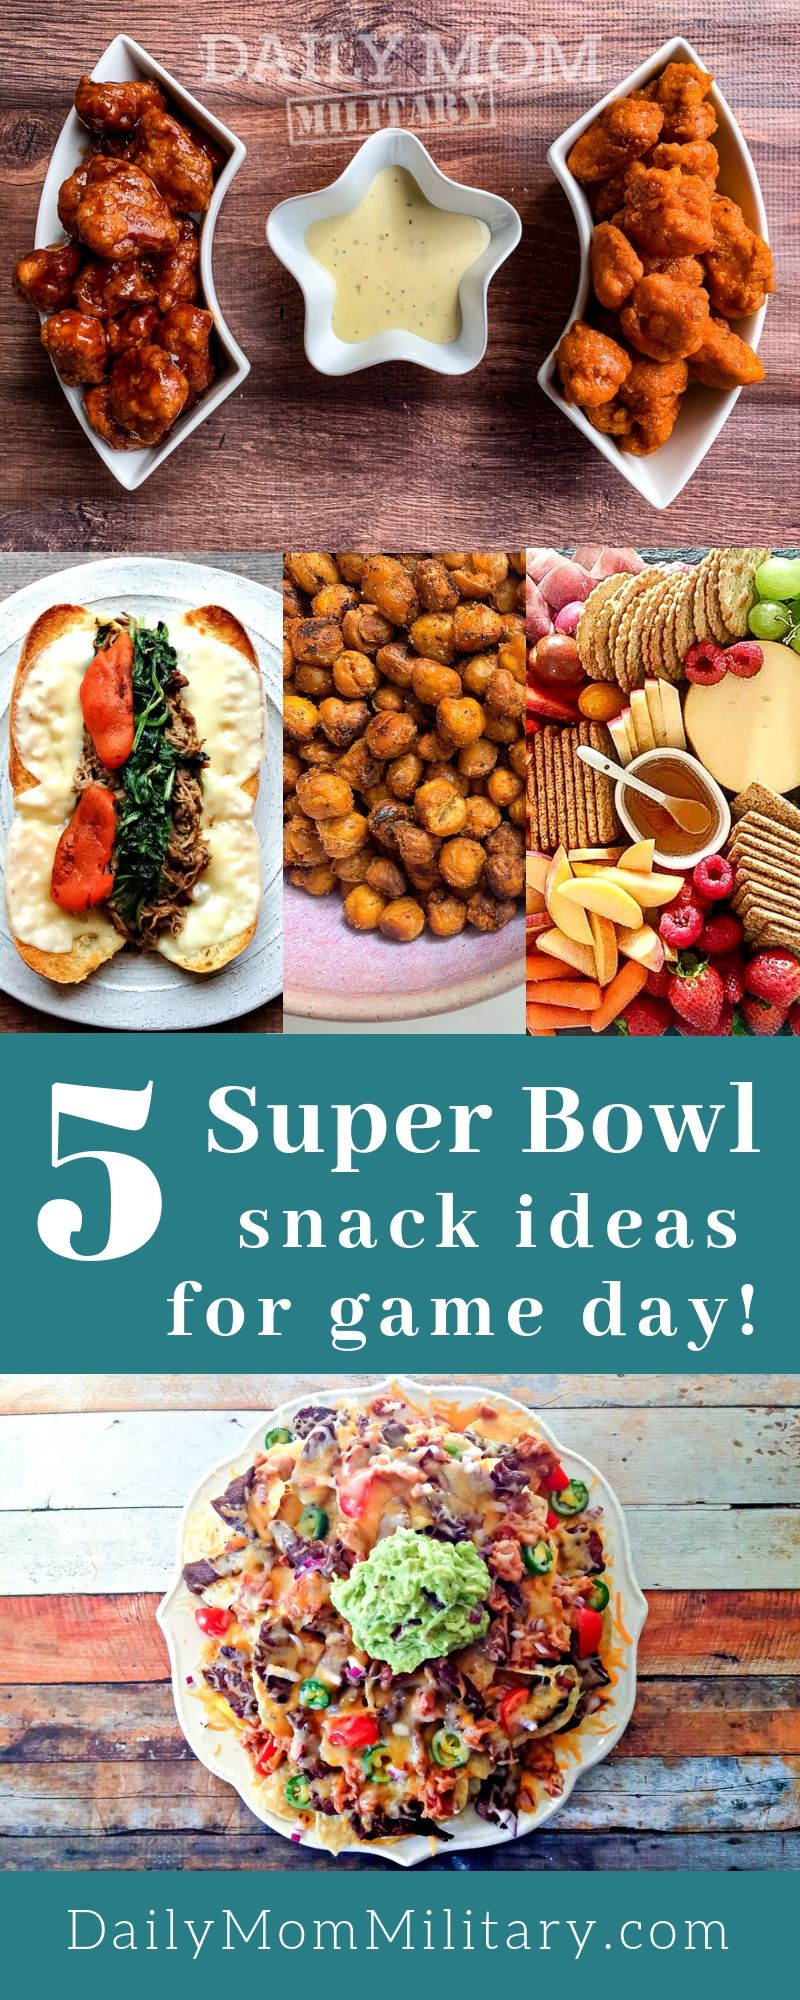 5 Super Bowl Snack Ideas for Game Day Daily Mom Military